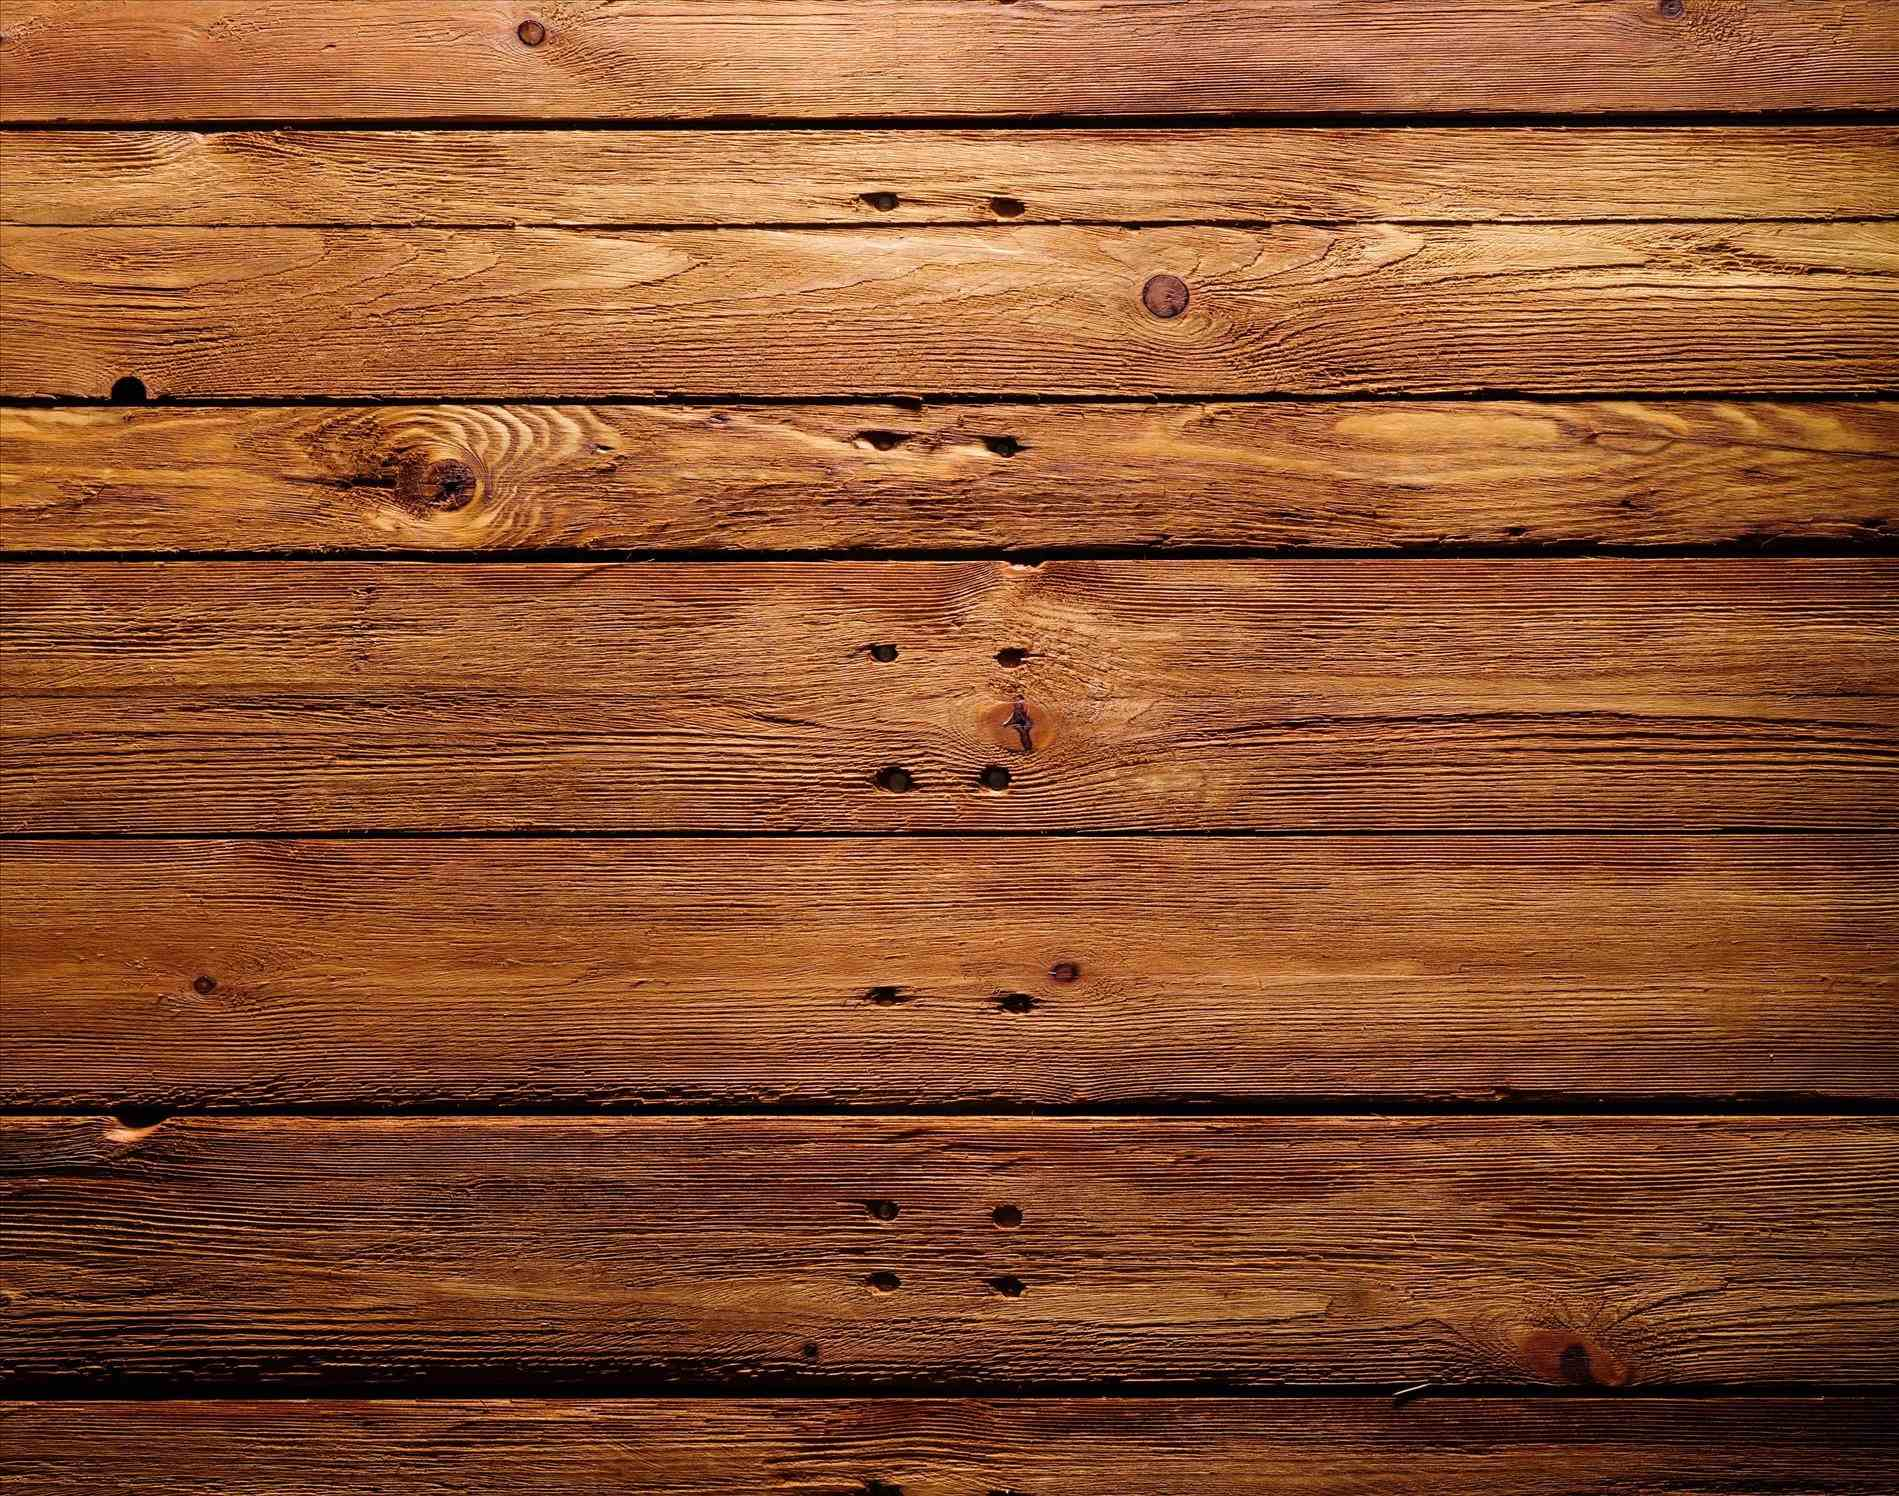 Images Work Wood Floor Wall Beam Transportation Free Wooden Pallets Background Images Work Wood Floor Wall Beam Transportation Barn S Oklmindsproutco Barn Nutri Active